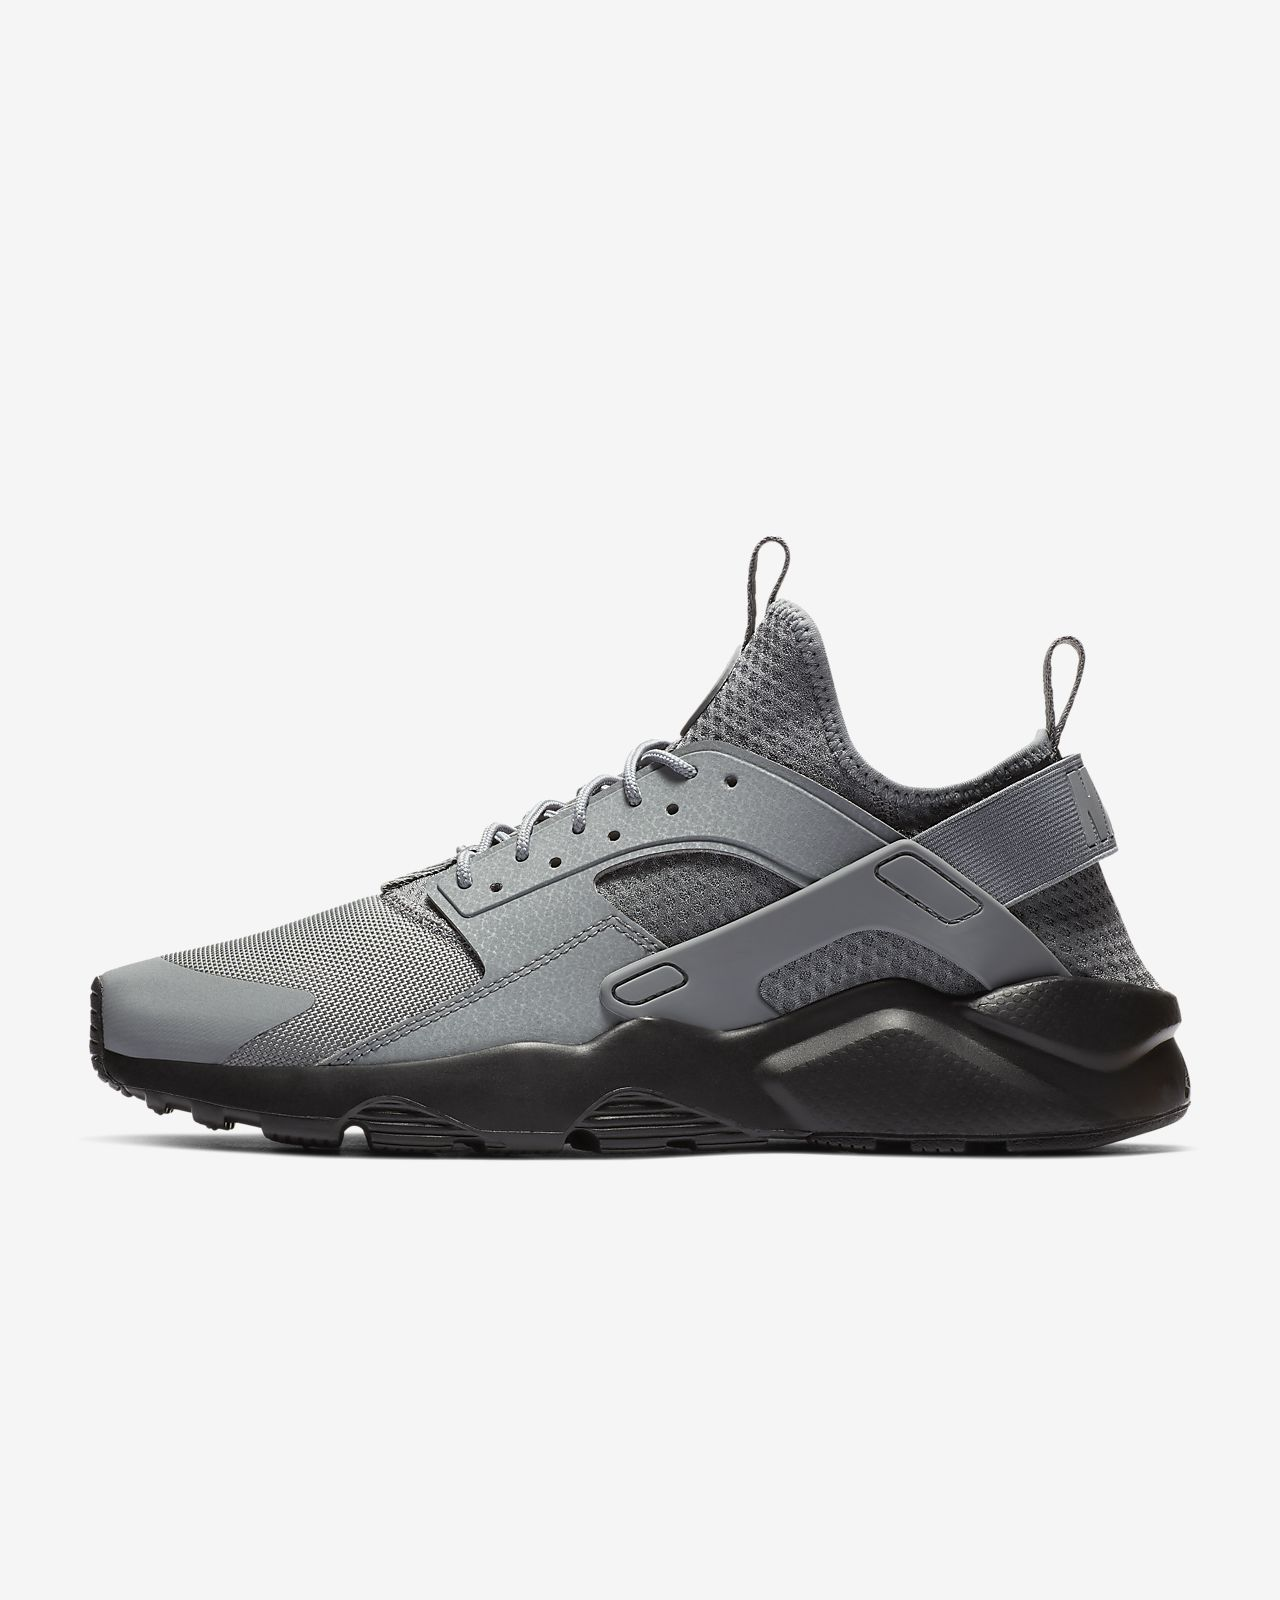 uk availability 9b170 5dc9a ... Nike Air Huarache Run Ultra Mens Shoe